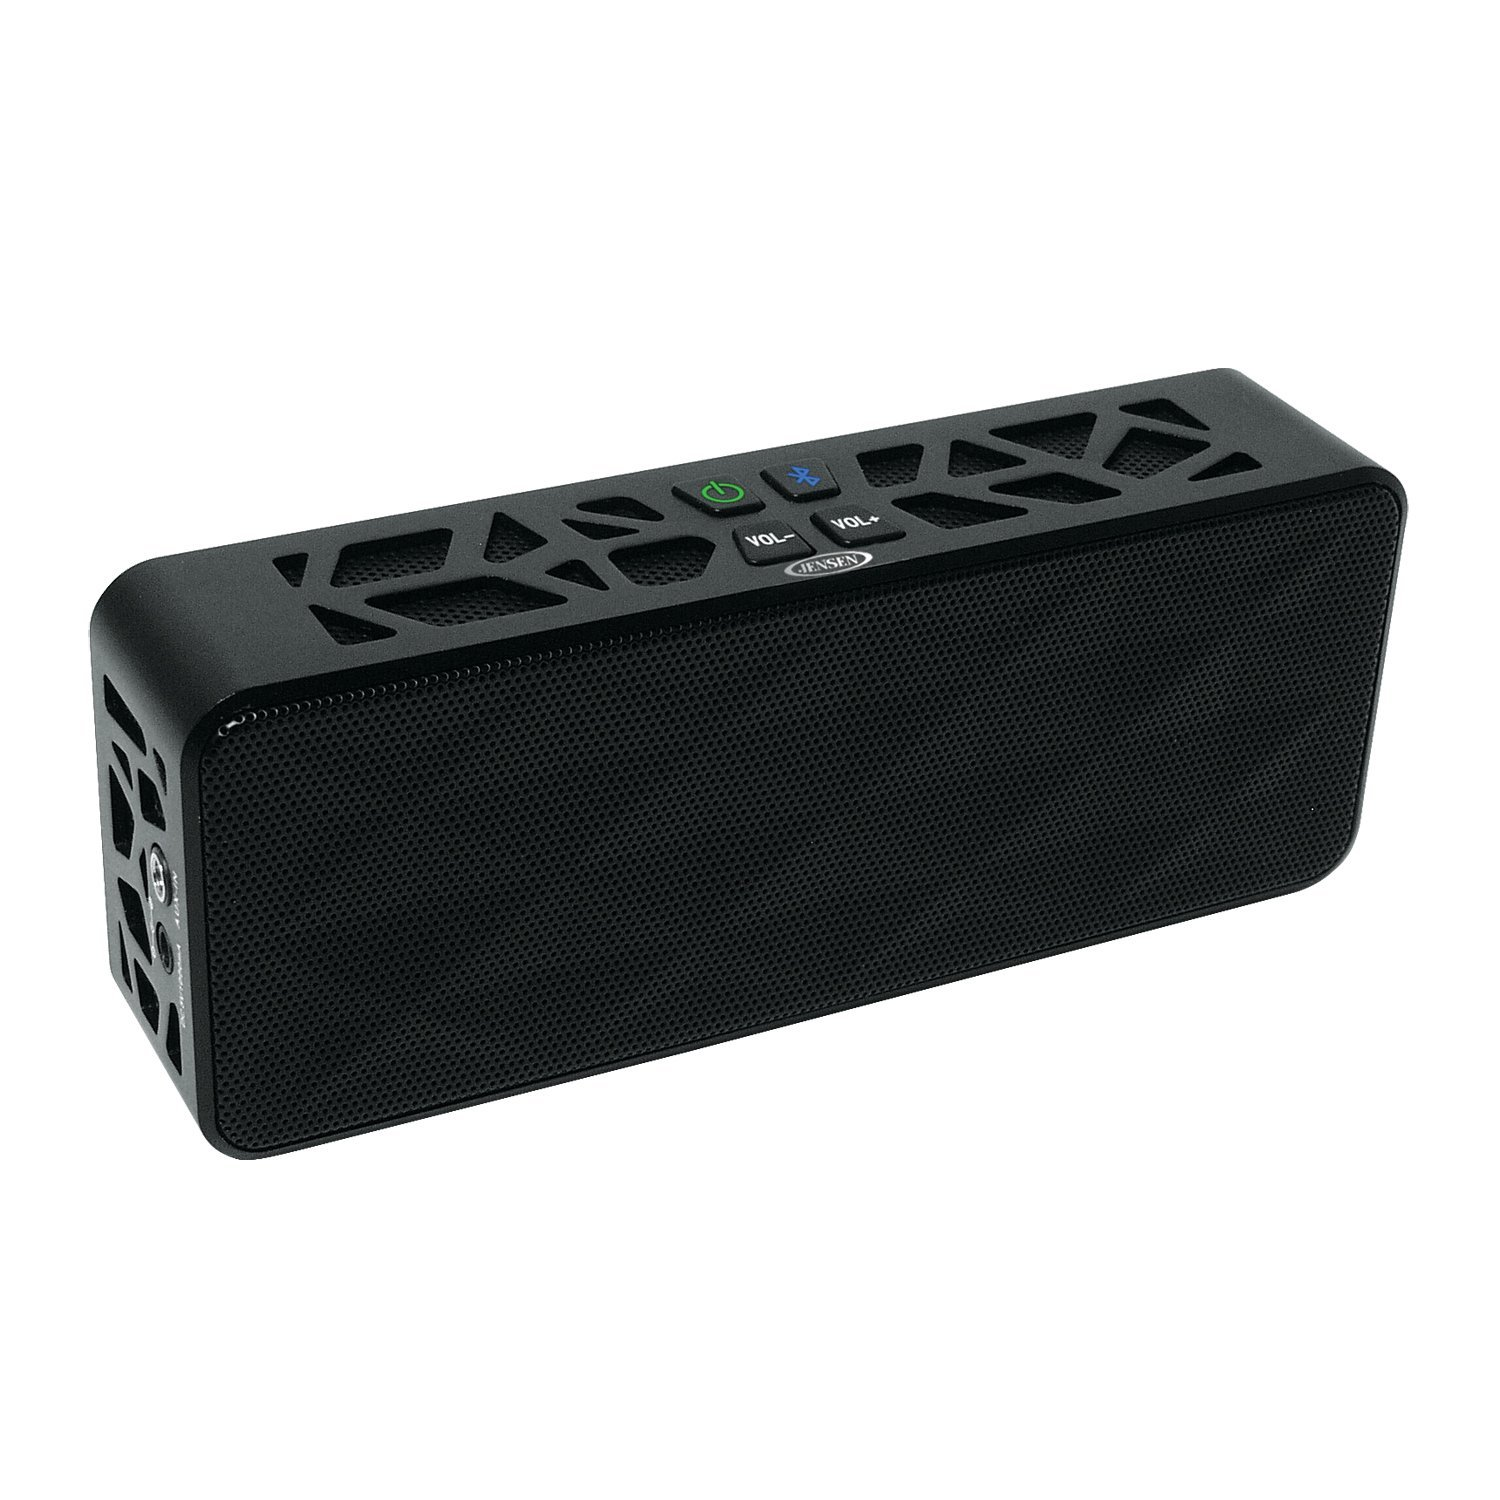 Jensen Portable Bluetooth Wireless Rechargeable Speaker for iPod,iPad,iPhone and Smartphones, Ship from America